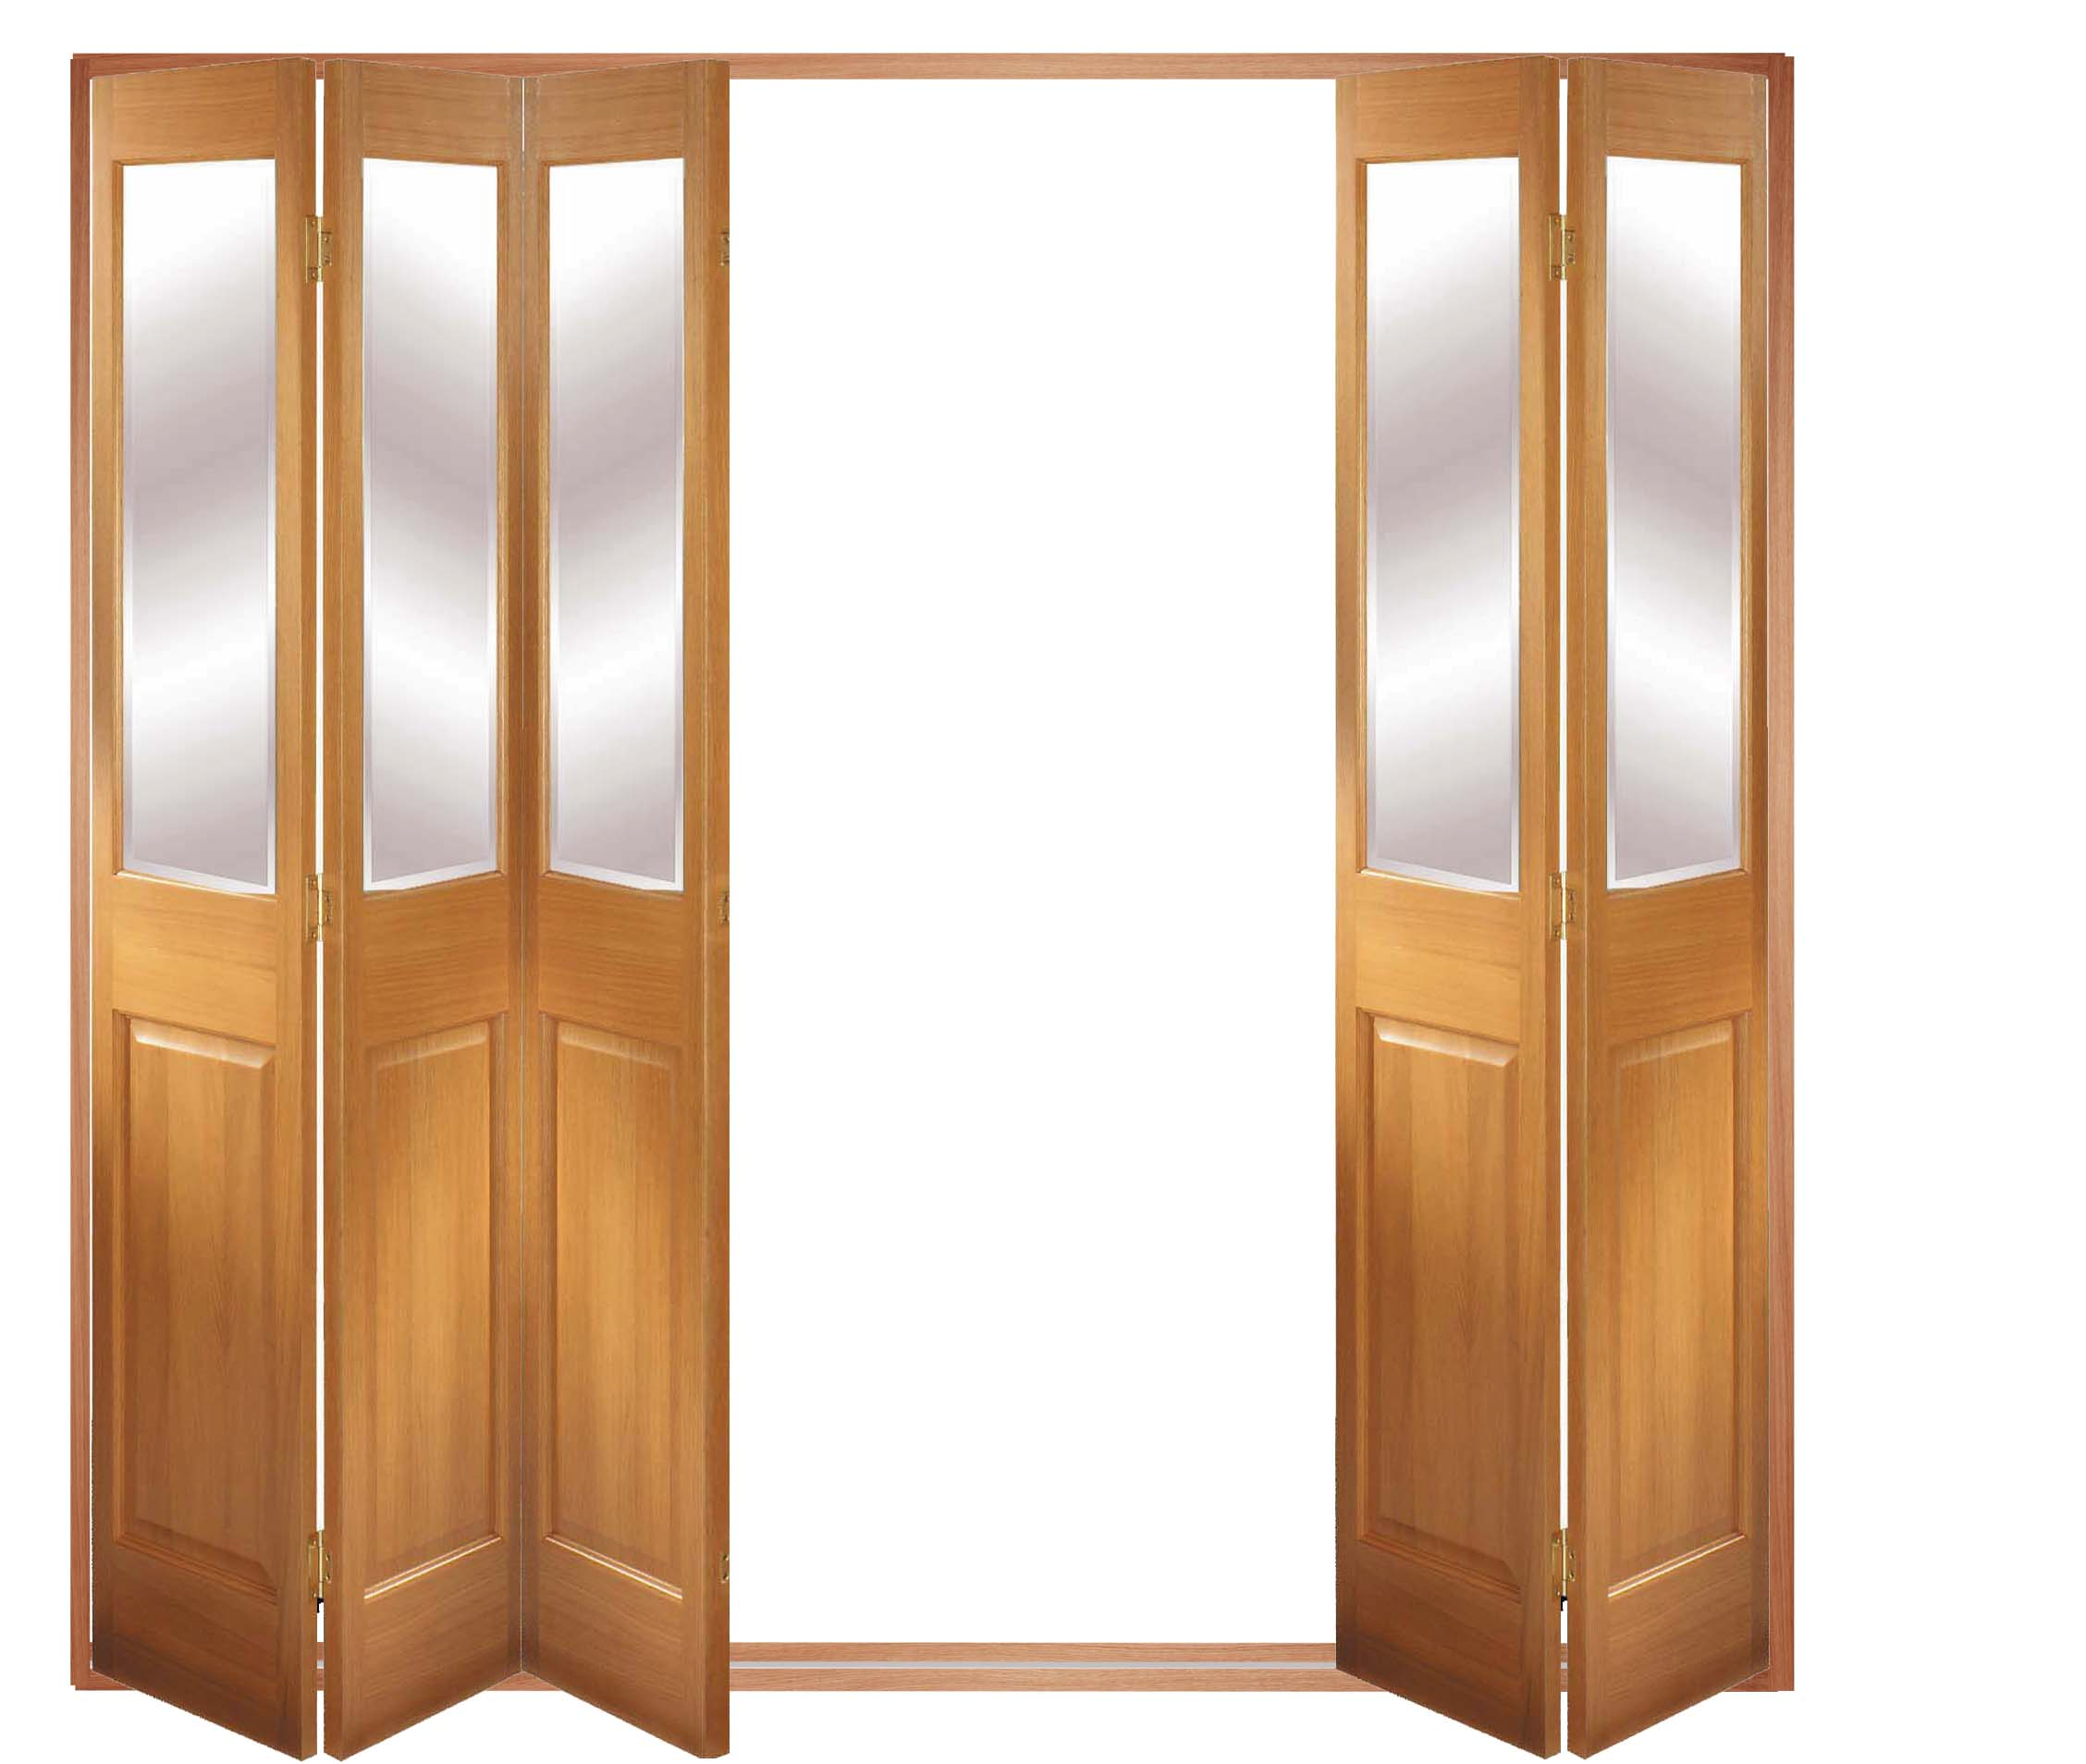 The Benefits of Installing the Right Internal Doors